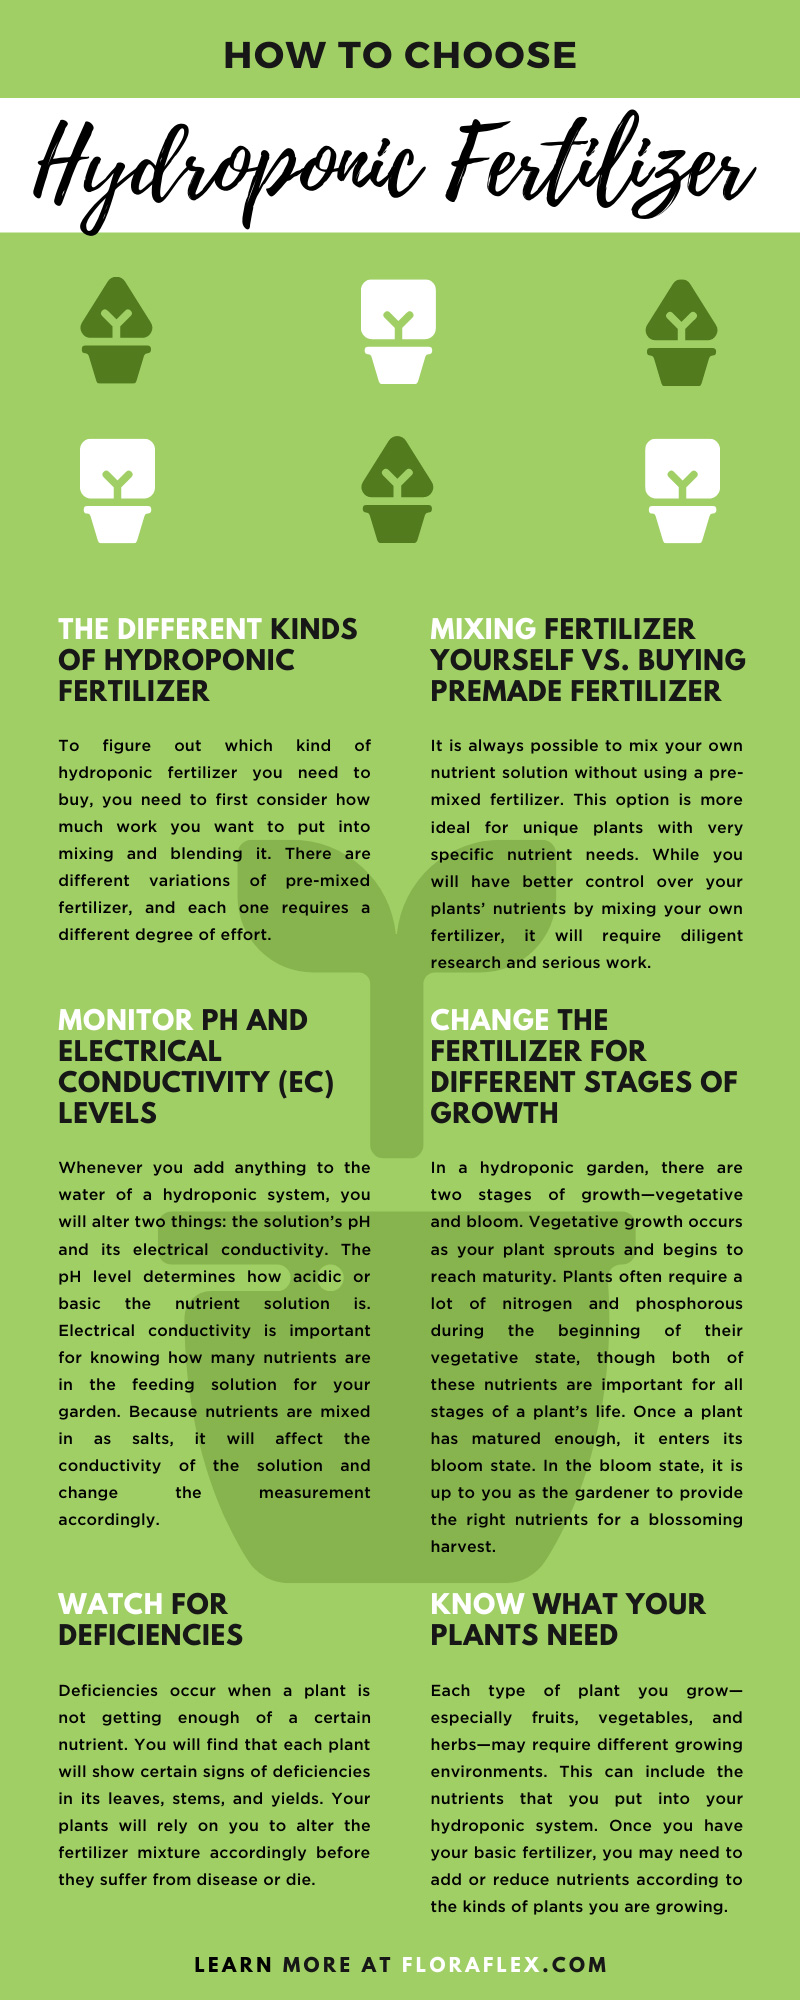 The Different Kinds of Hydroponic Fertilizer